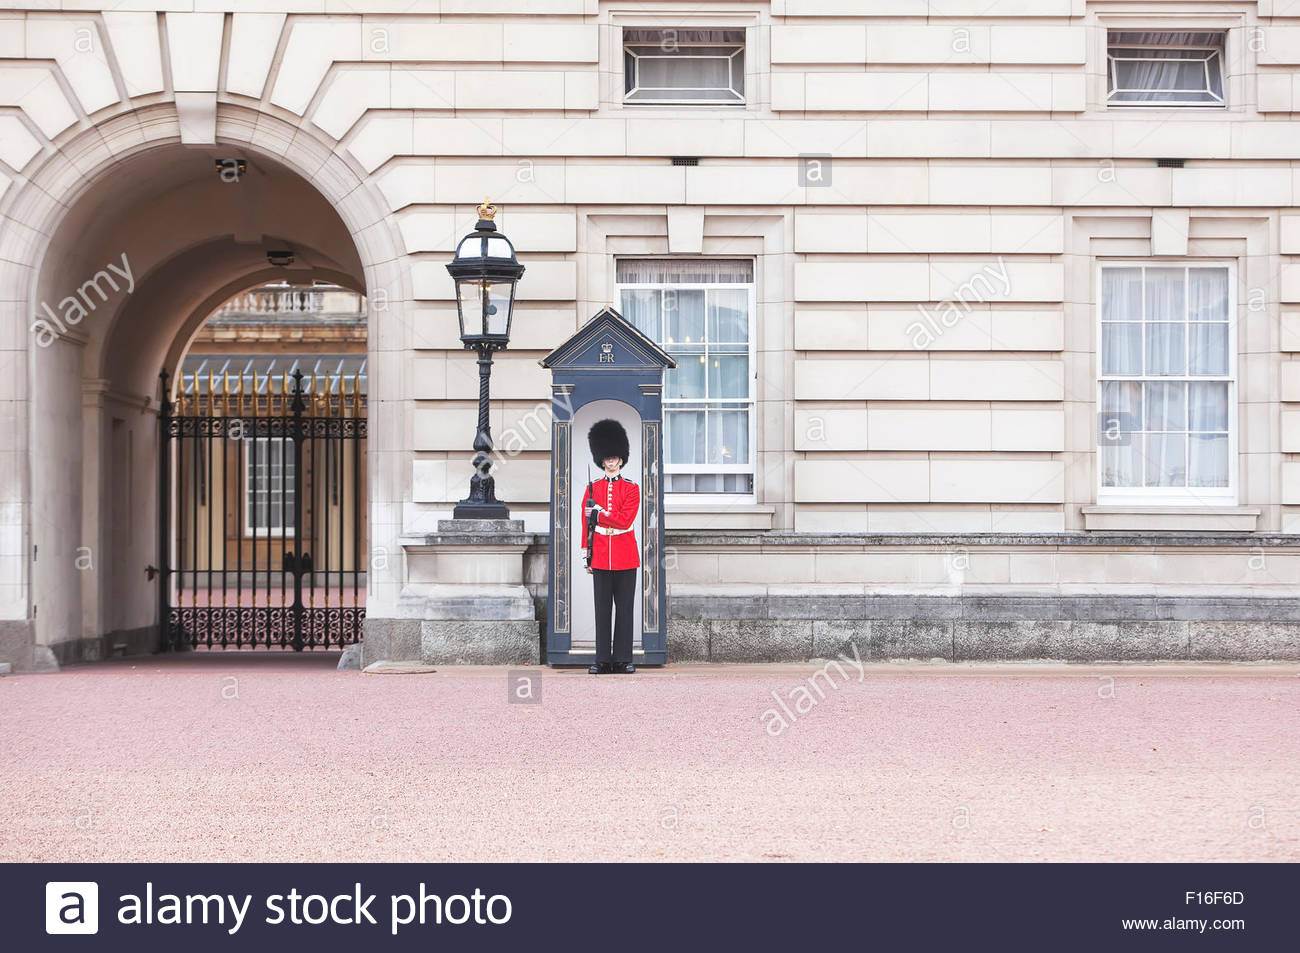 Royal Guard standing, Buckingham Palace, London, England, Gran Bretagna, U.K, Immagini Stock